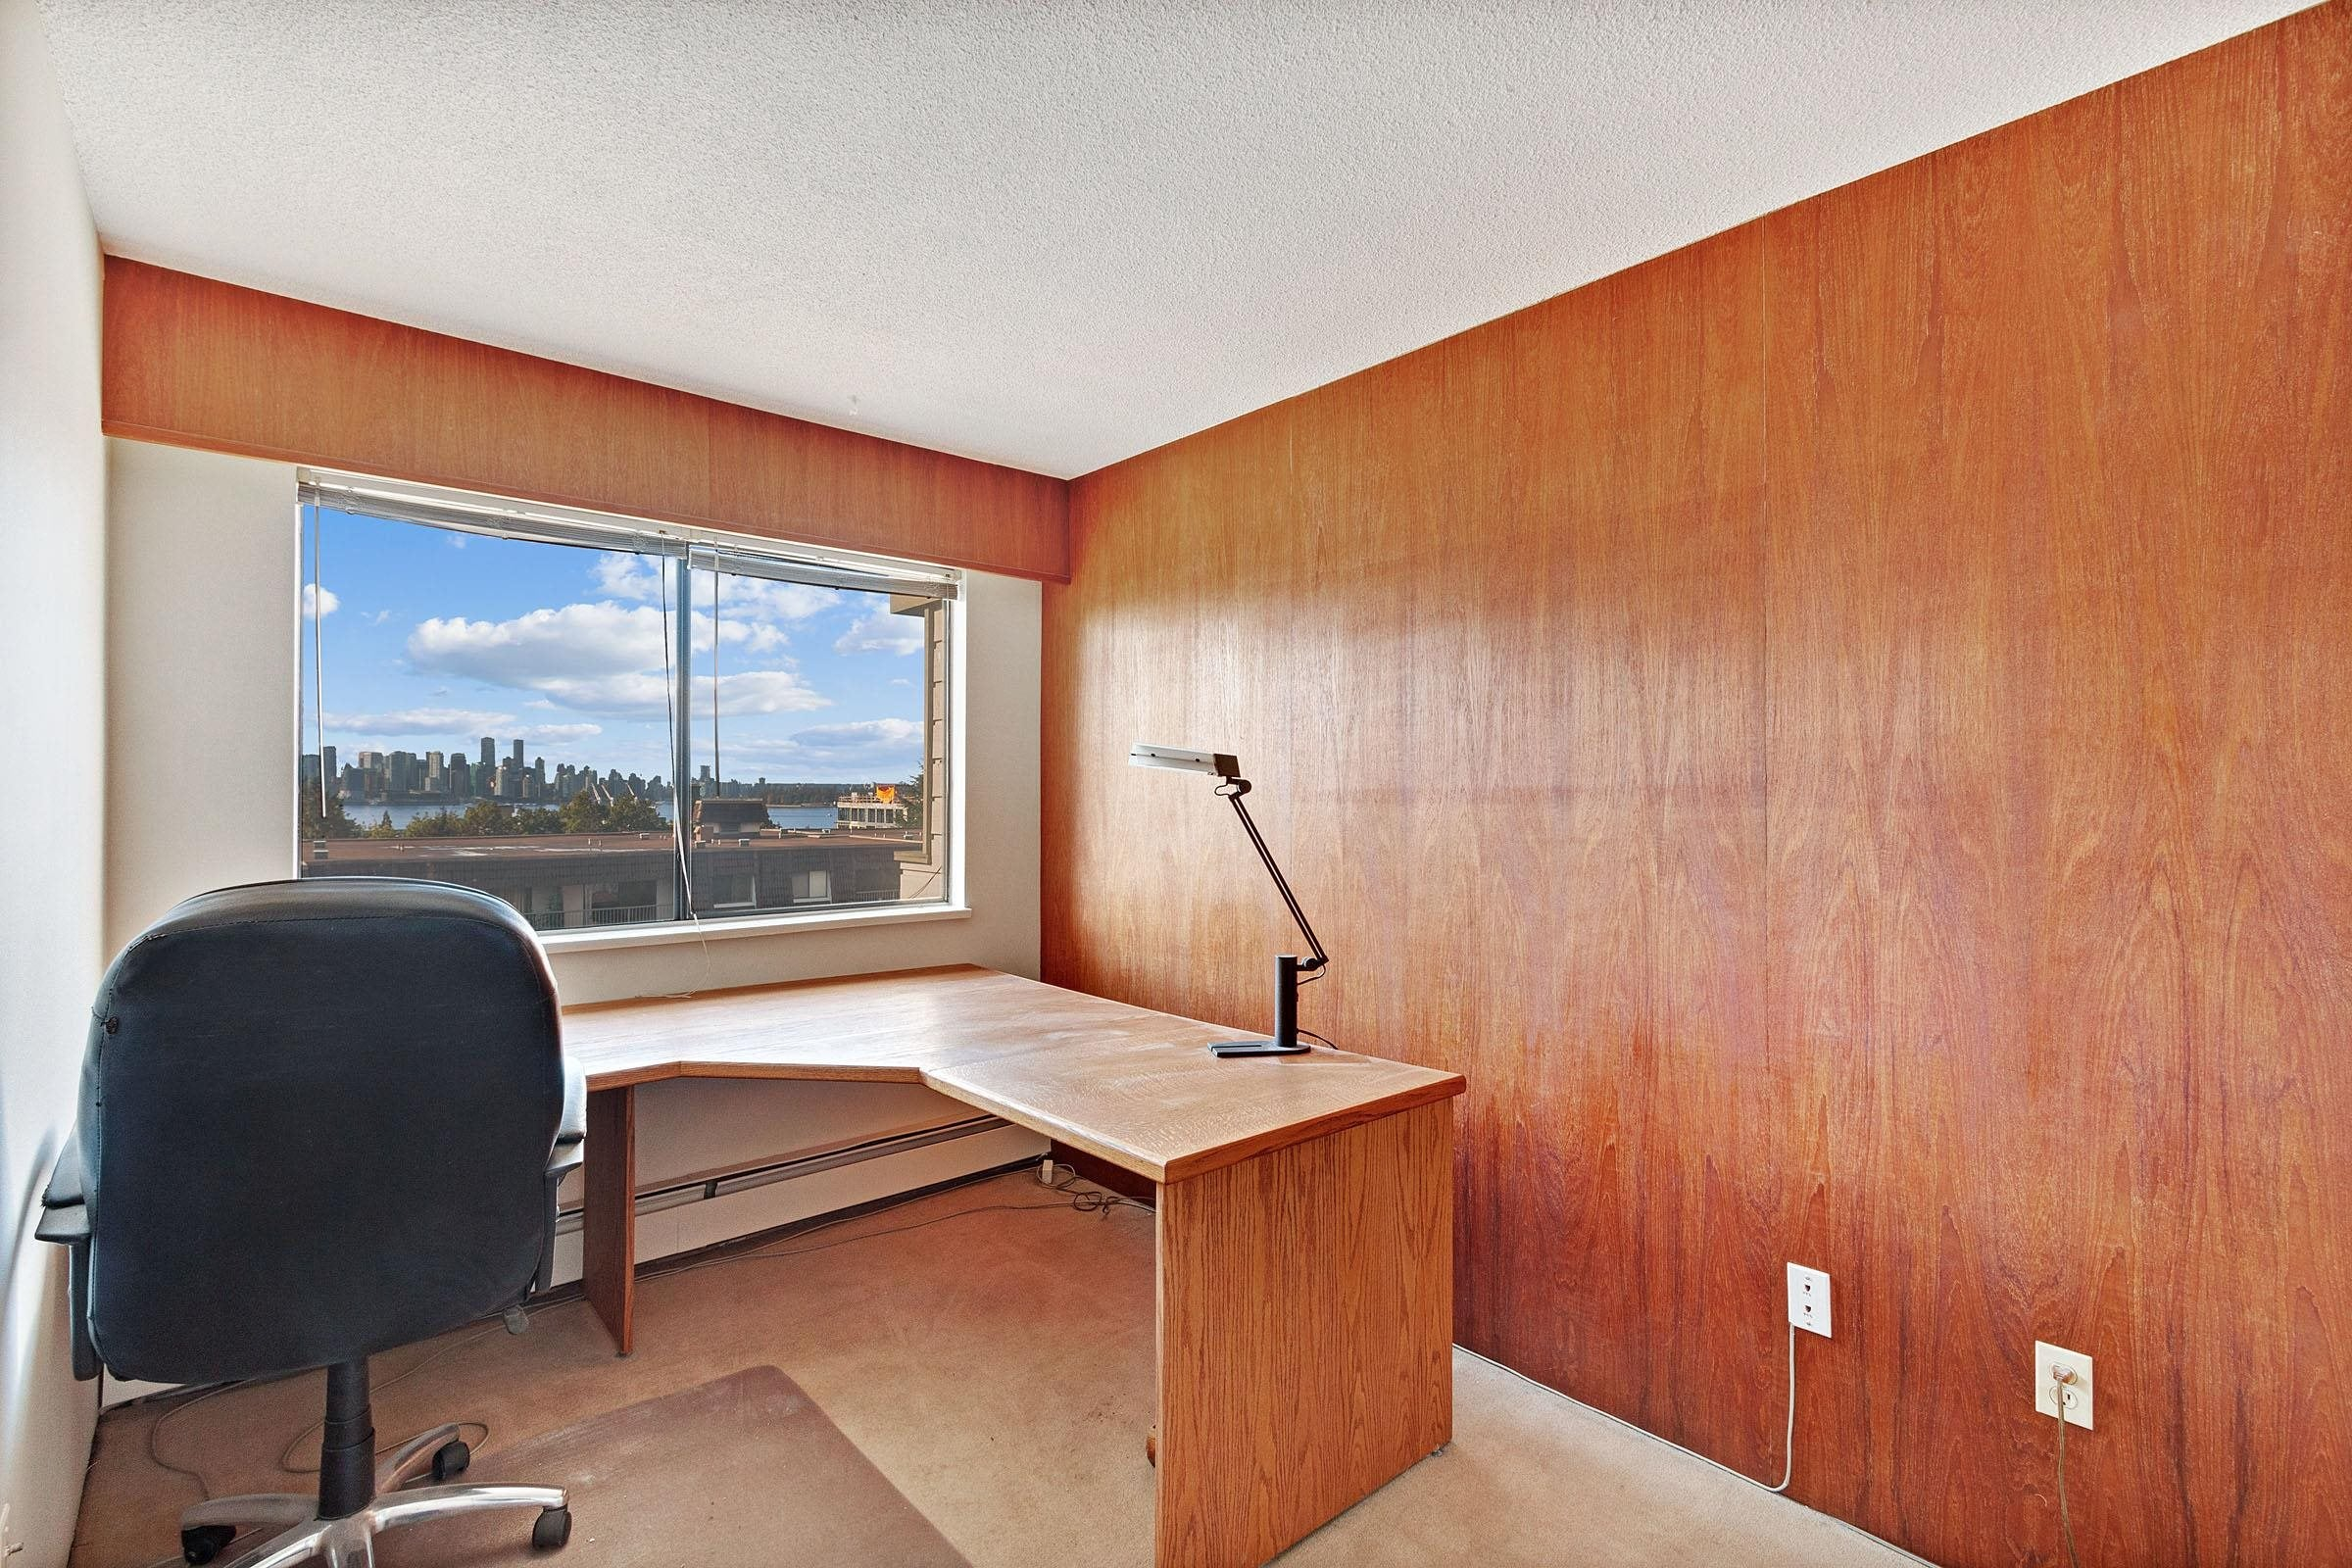 301 264 W 2ND STREET - Lower Lonsdale Apartment/Condo for sale, 2 Bedrooms (R2625527) - #13